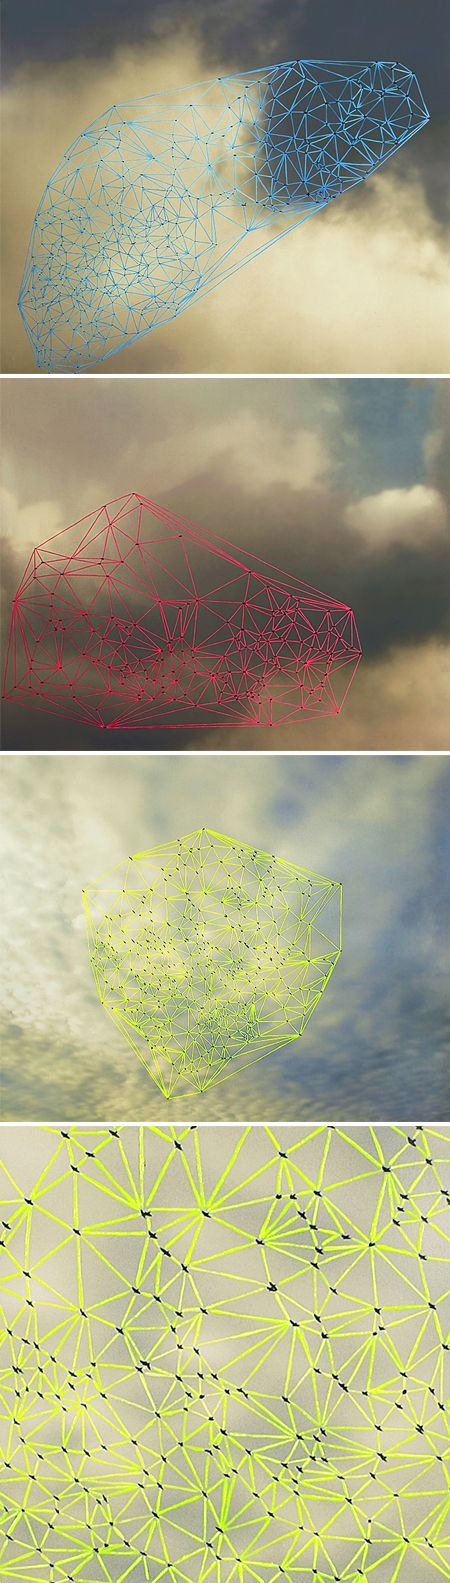 catherine ulitsky - tiny birds in flight, creating massive geometric objects. <3